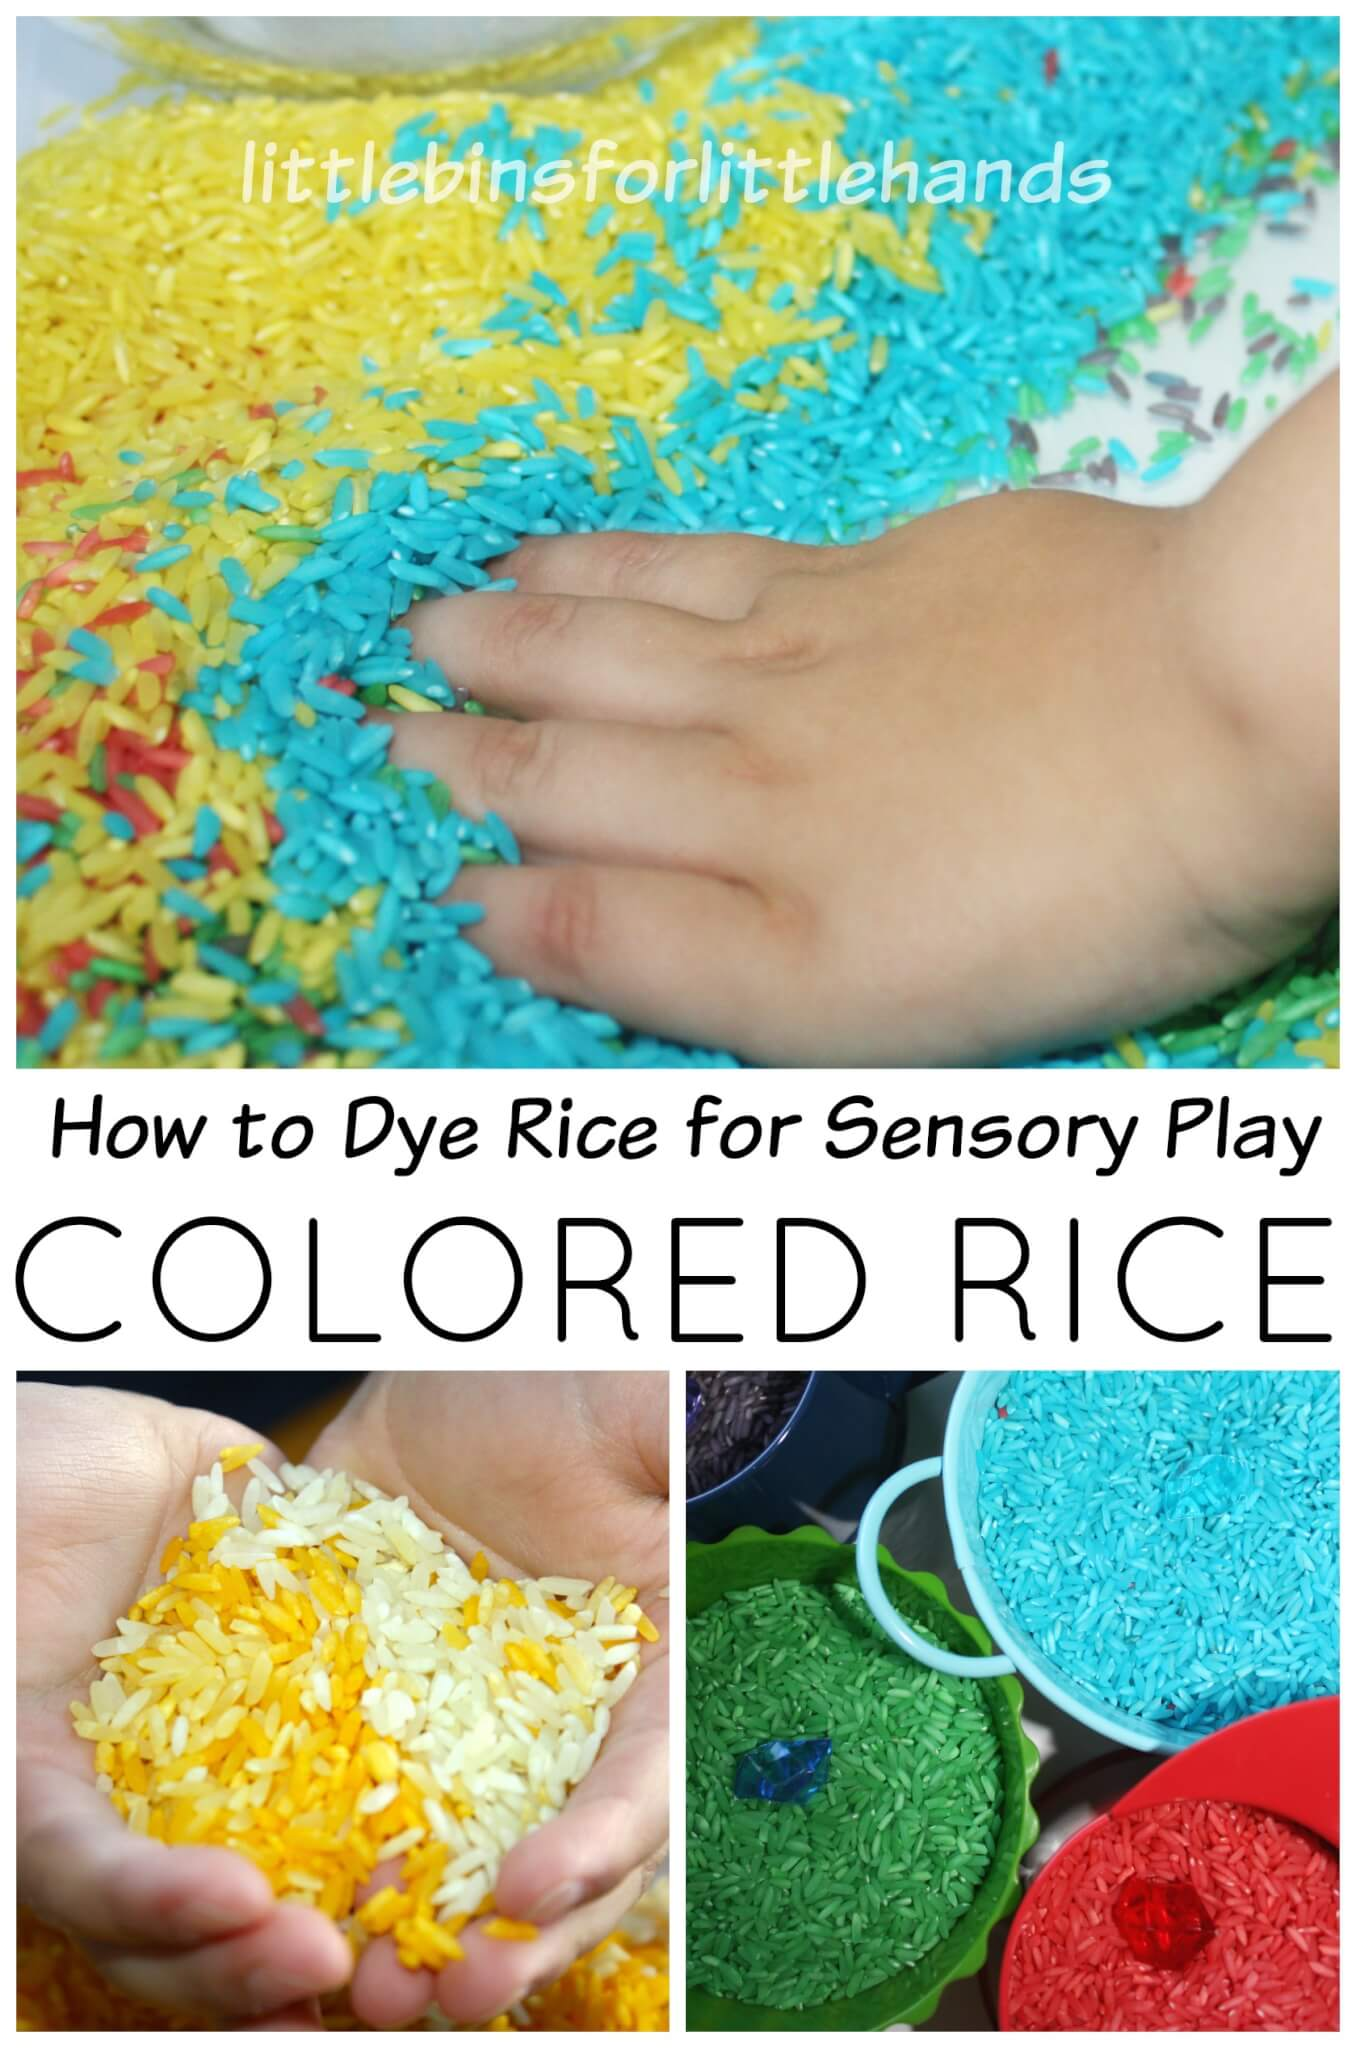 How to Dye Rice for Sensory Play Colored Rice